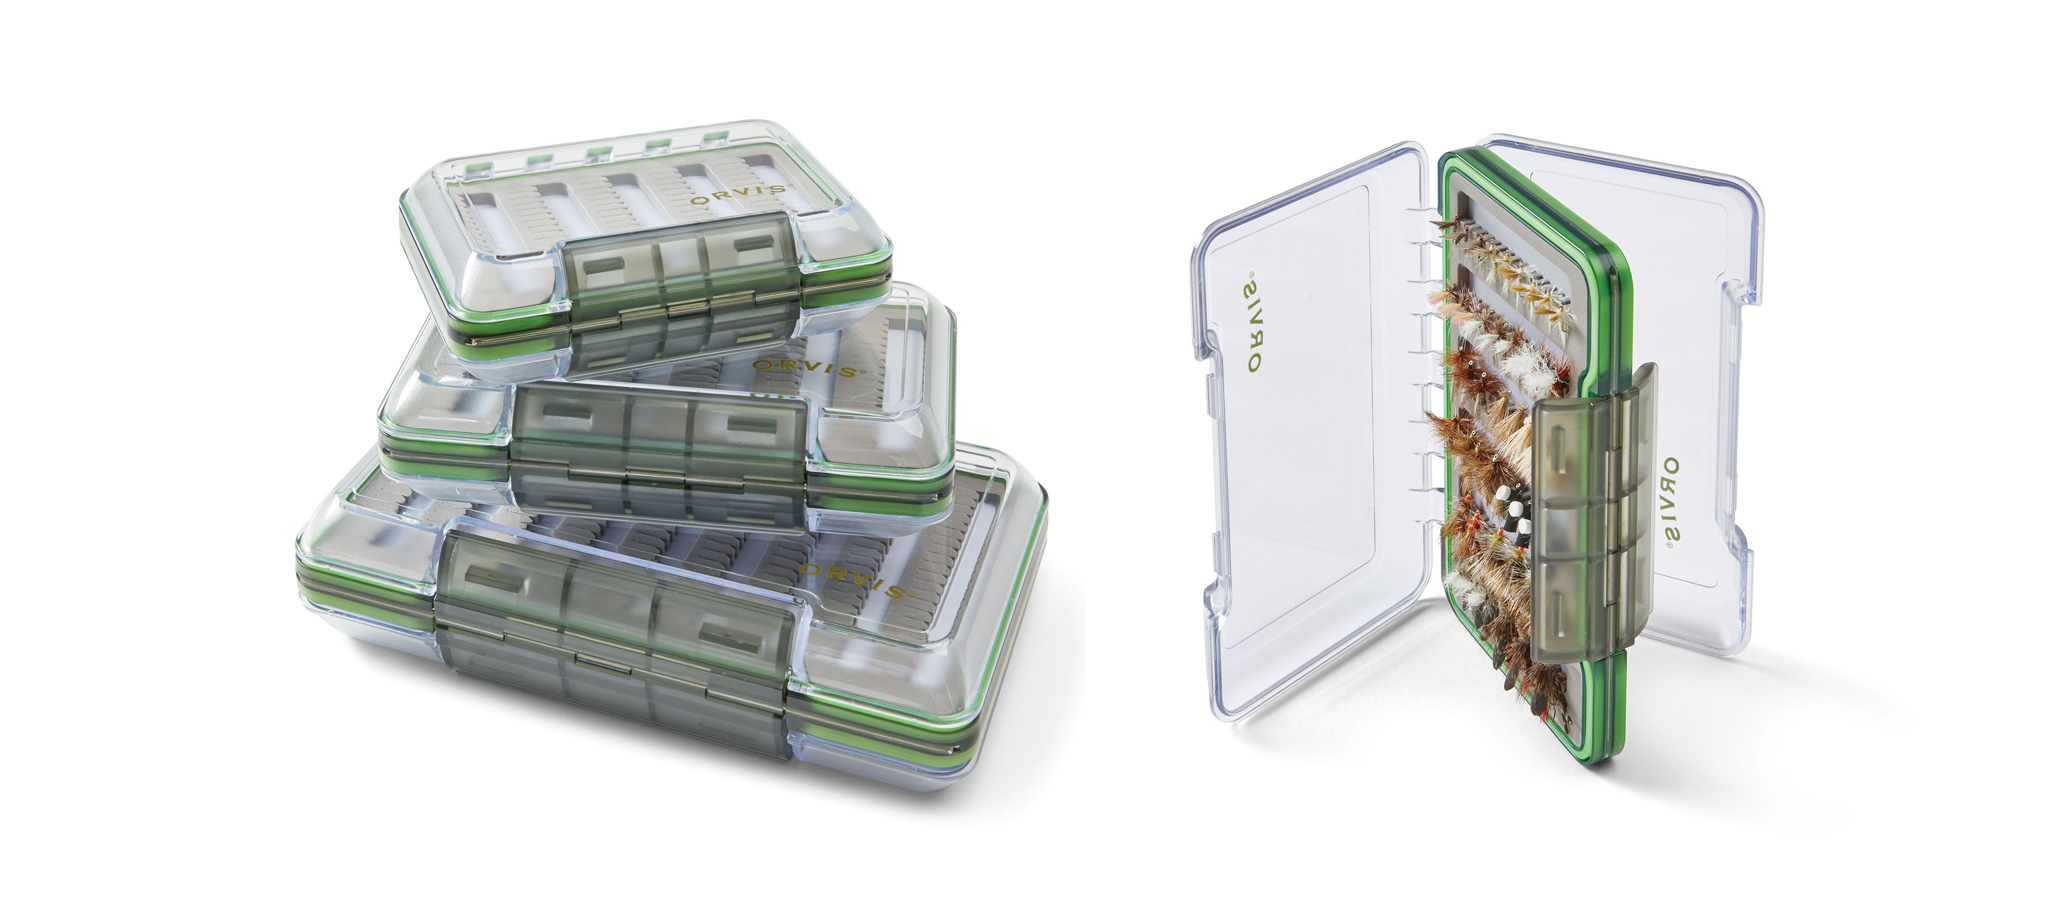 Orvis-Doublesided-Fly-Box-Fliegendose